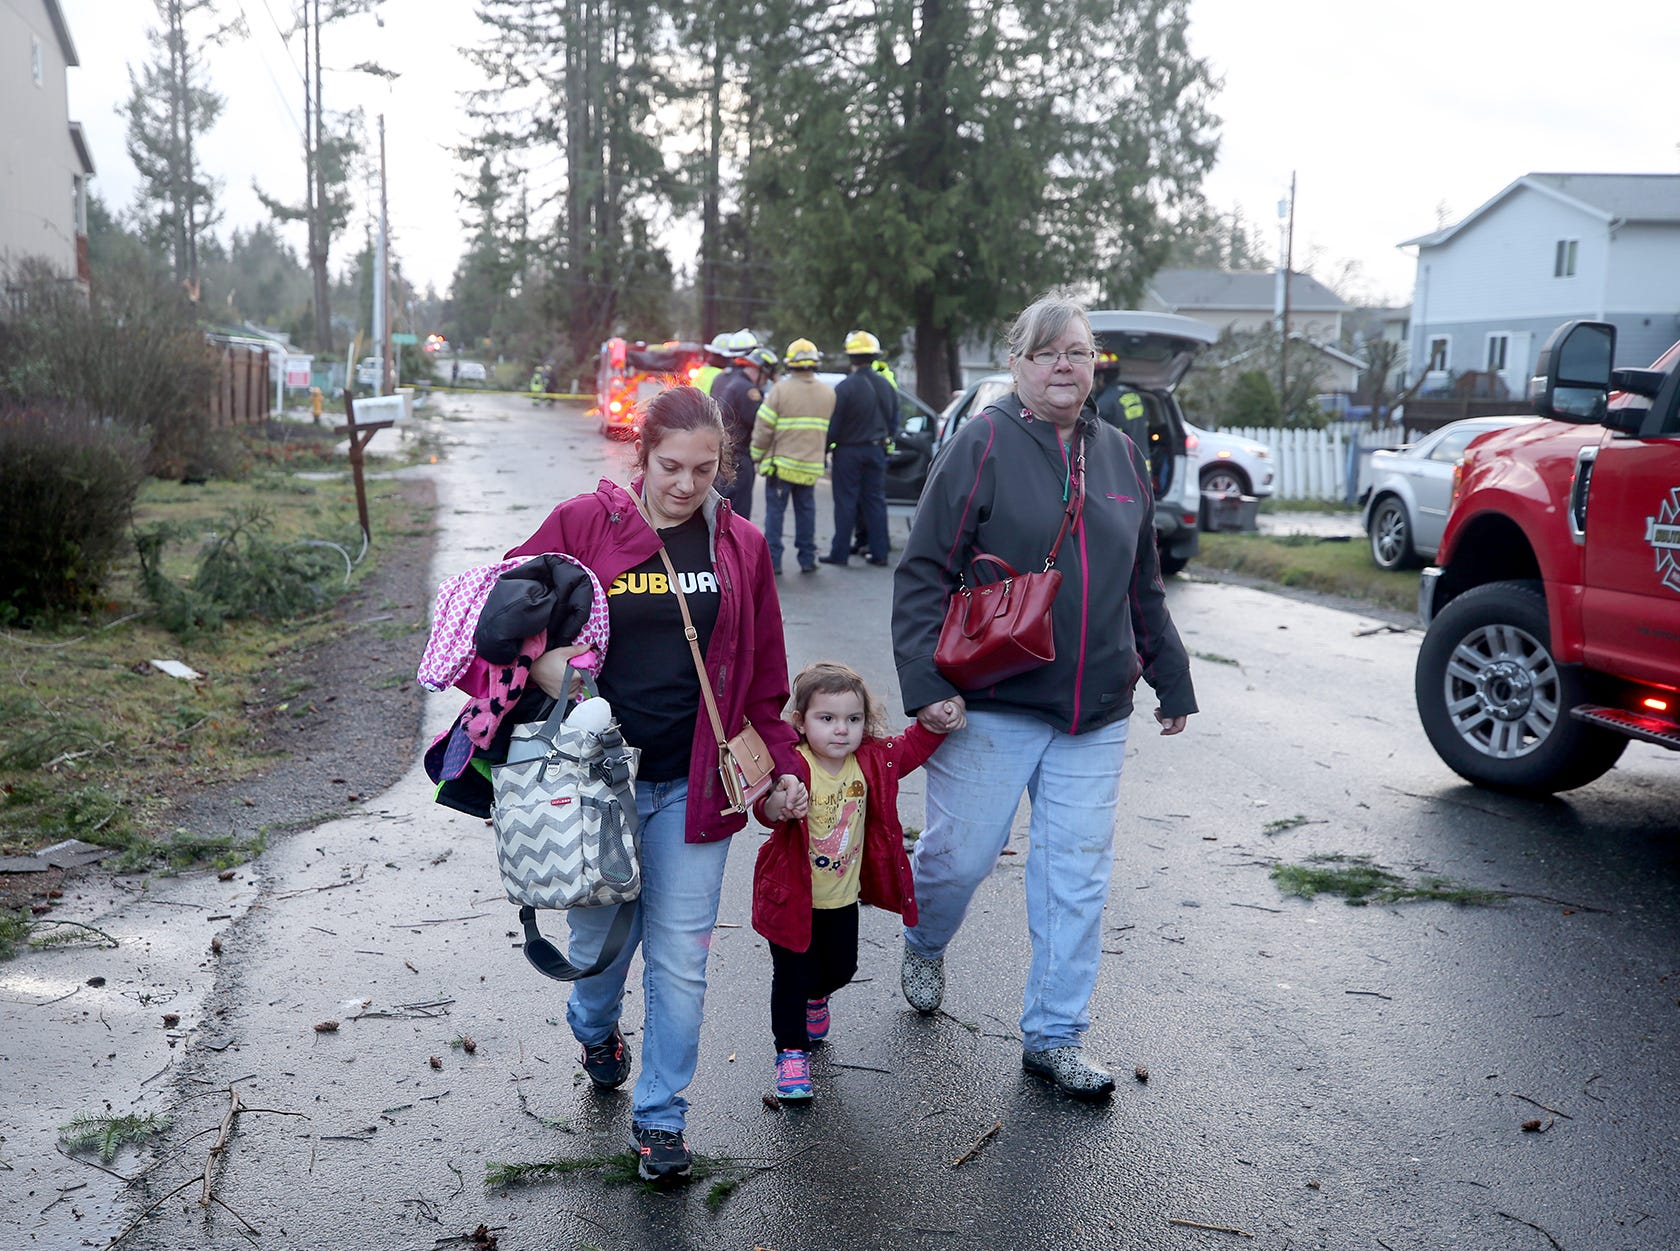 People walk away from their Harris Road neighborhood in Port Orchard after a tornado touchded down there on the afternoon of Tuesday, Dec. 18.